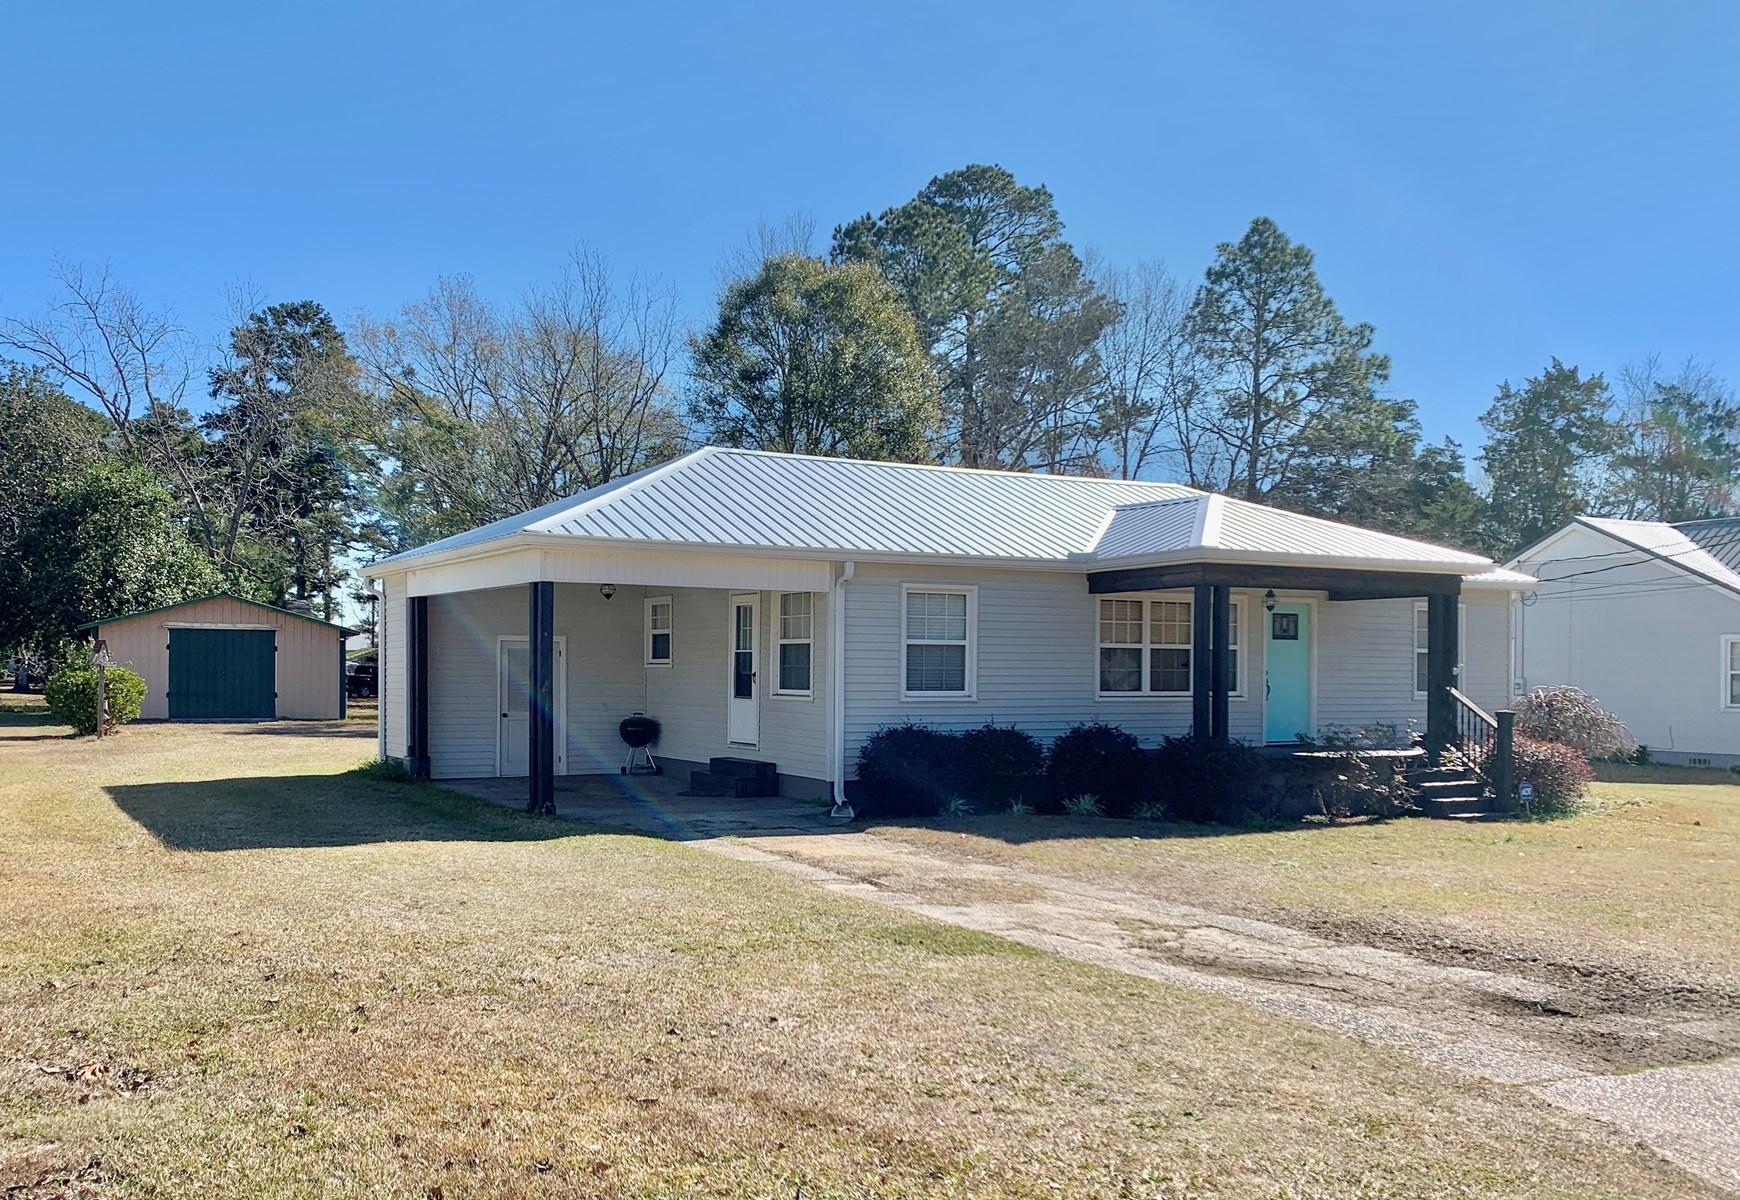 Home for sale in Geneva, Alabama